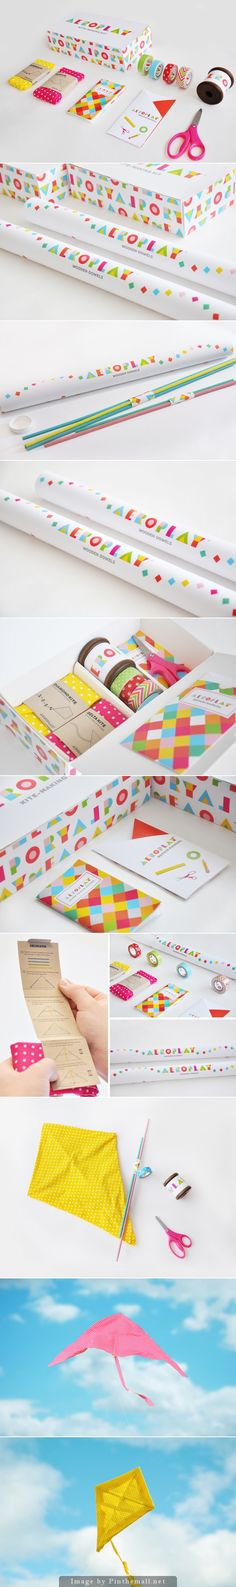 Aeroplay Kites Packaging design. Bright and fun colors are always a plus :)